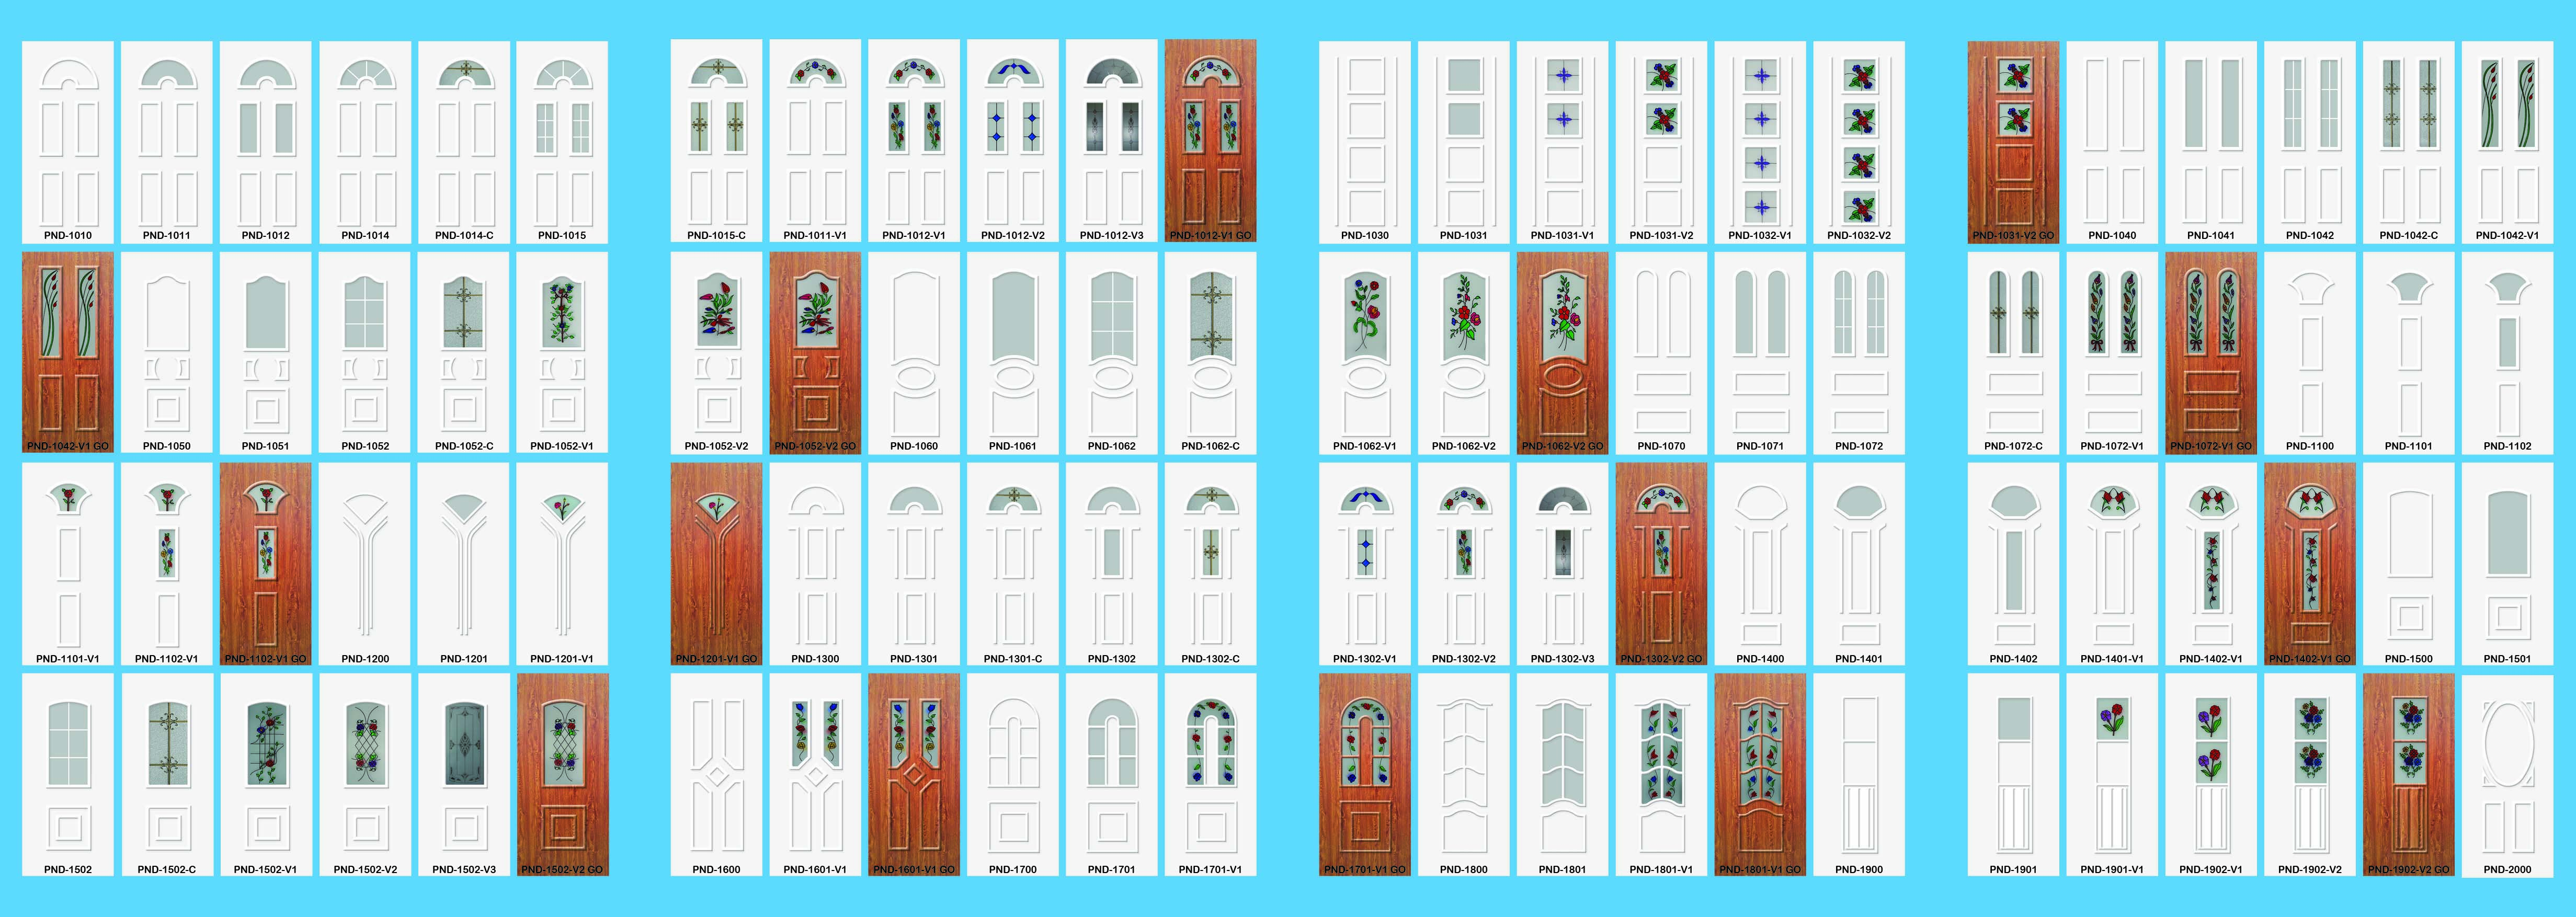 Door catalogue main gate design catalogue entrance iron for Door design catalogue